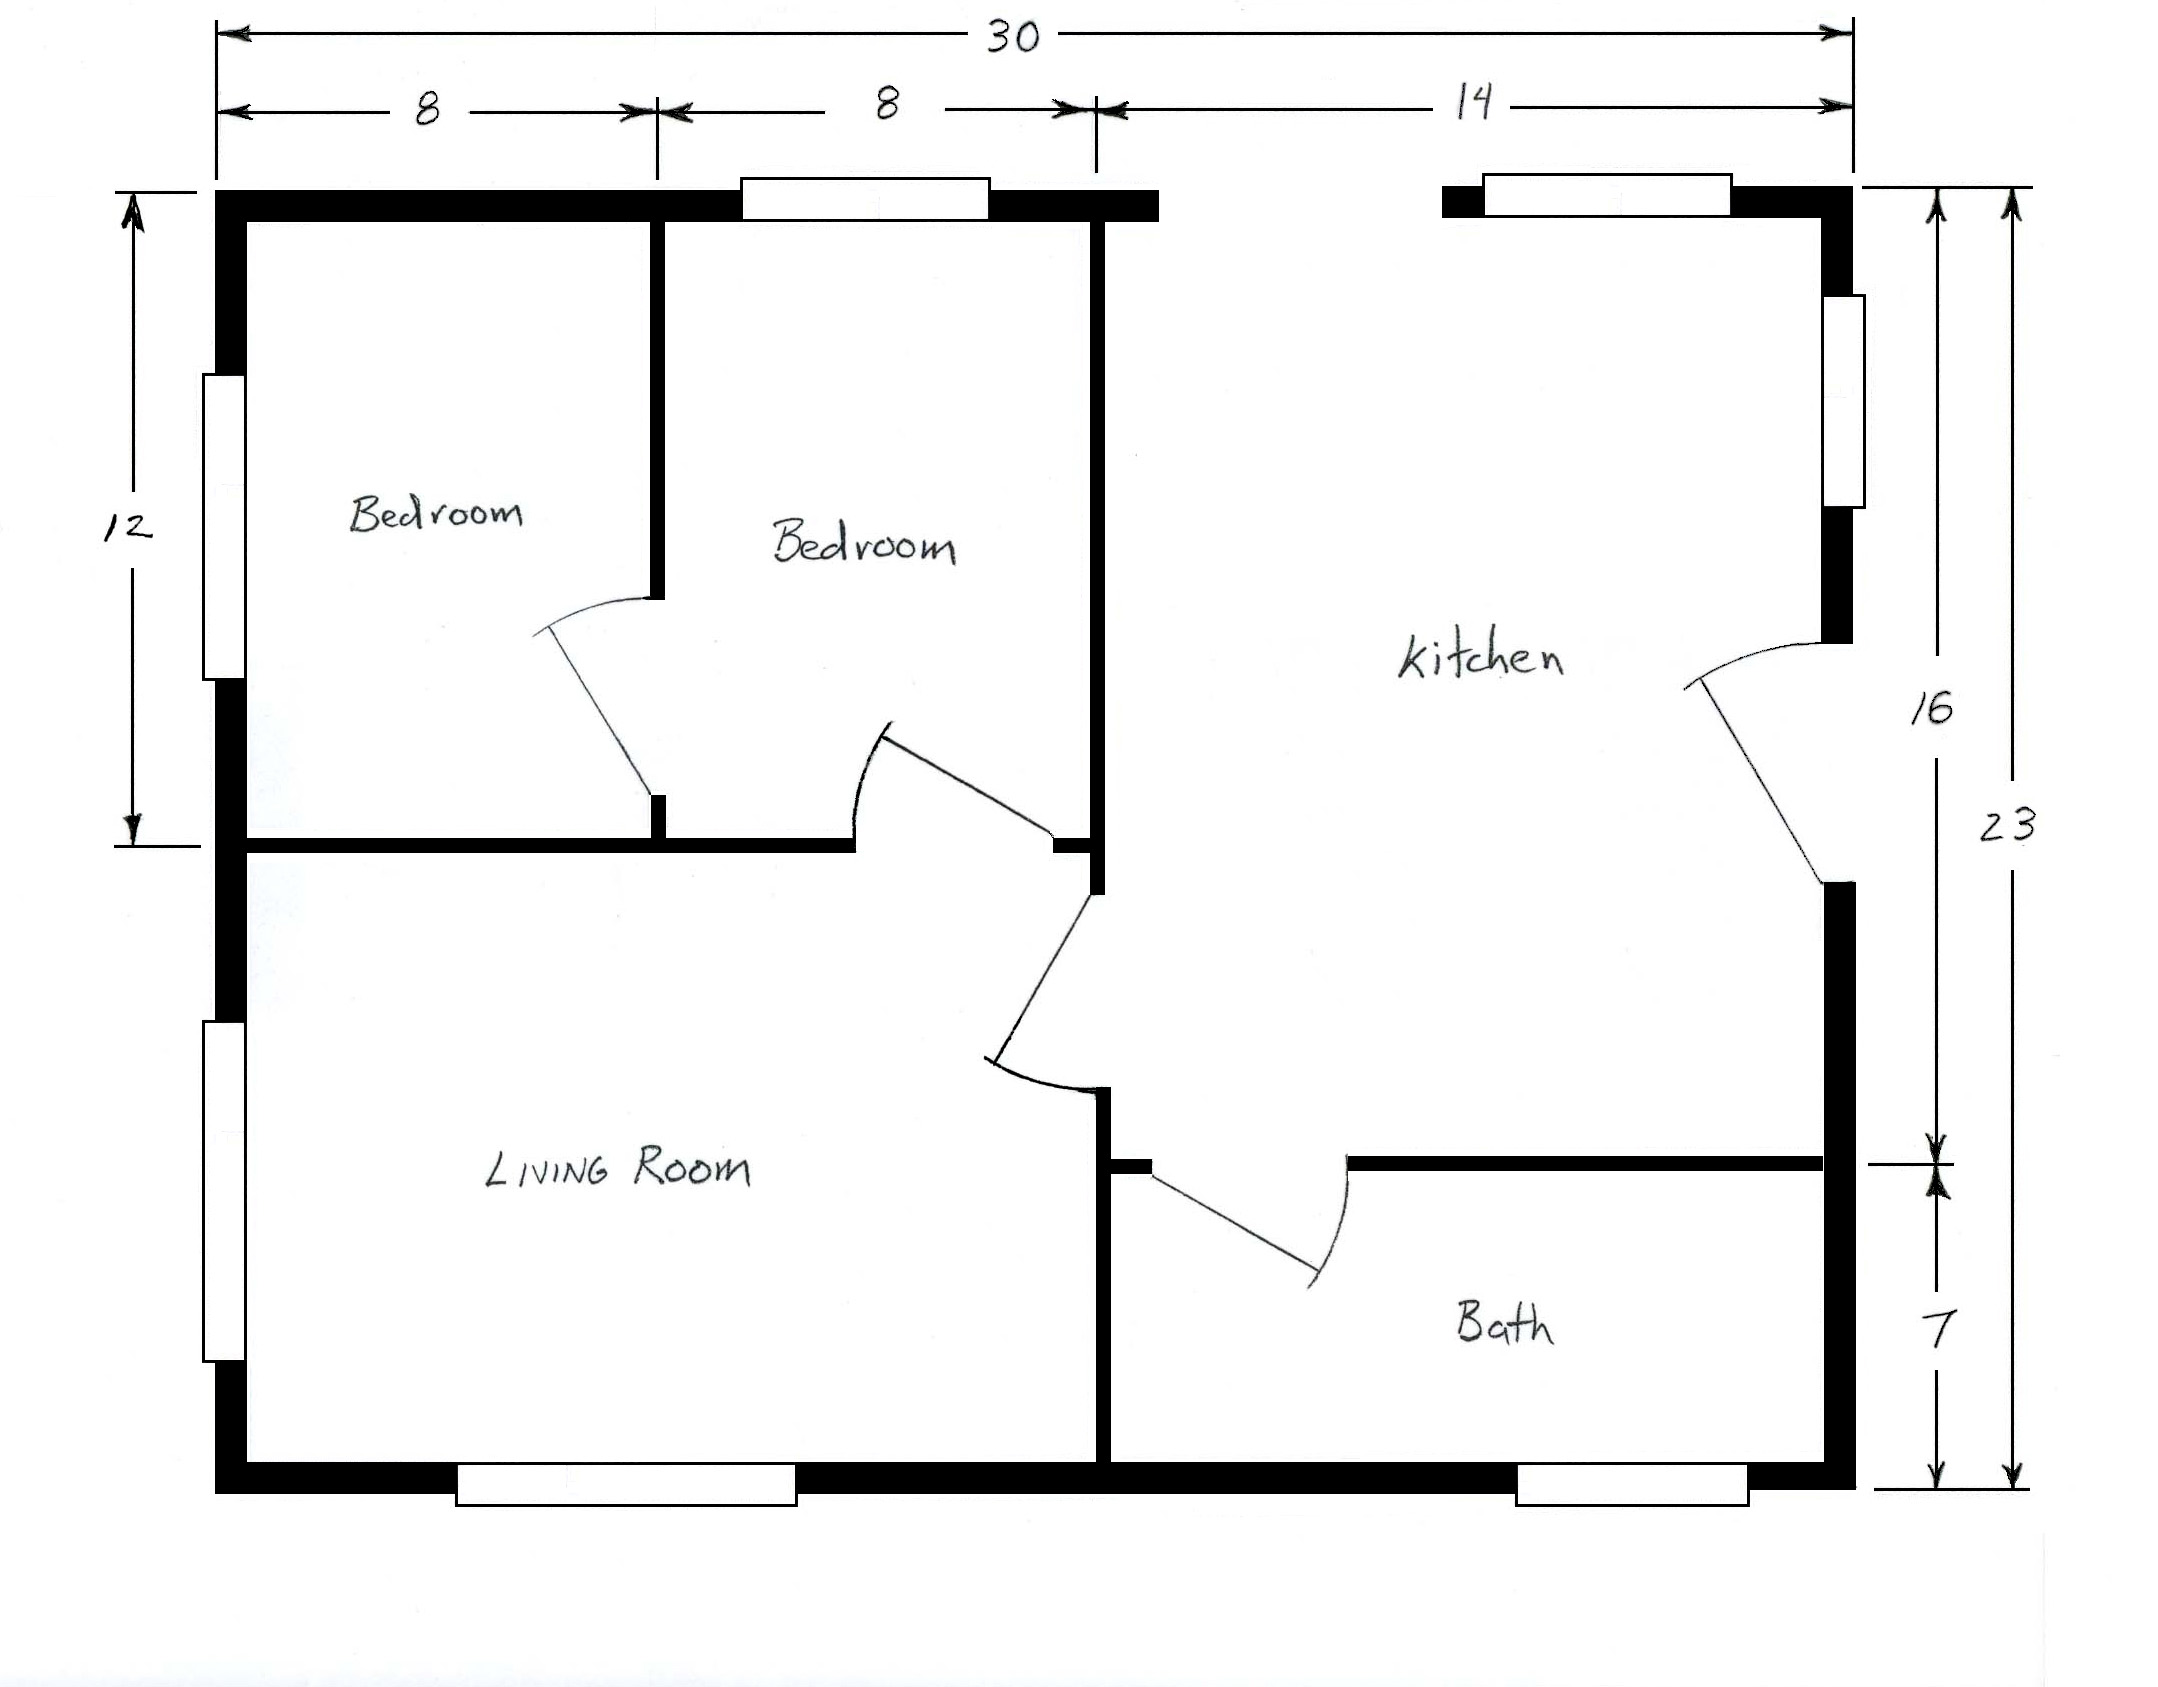 floor%20plan Samples Of Floor Plans Small Homes on for apartments, 2 bedroom apartment, for room, home layouts, for apartment 620 square feet, office building, for building, ja town,